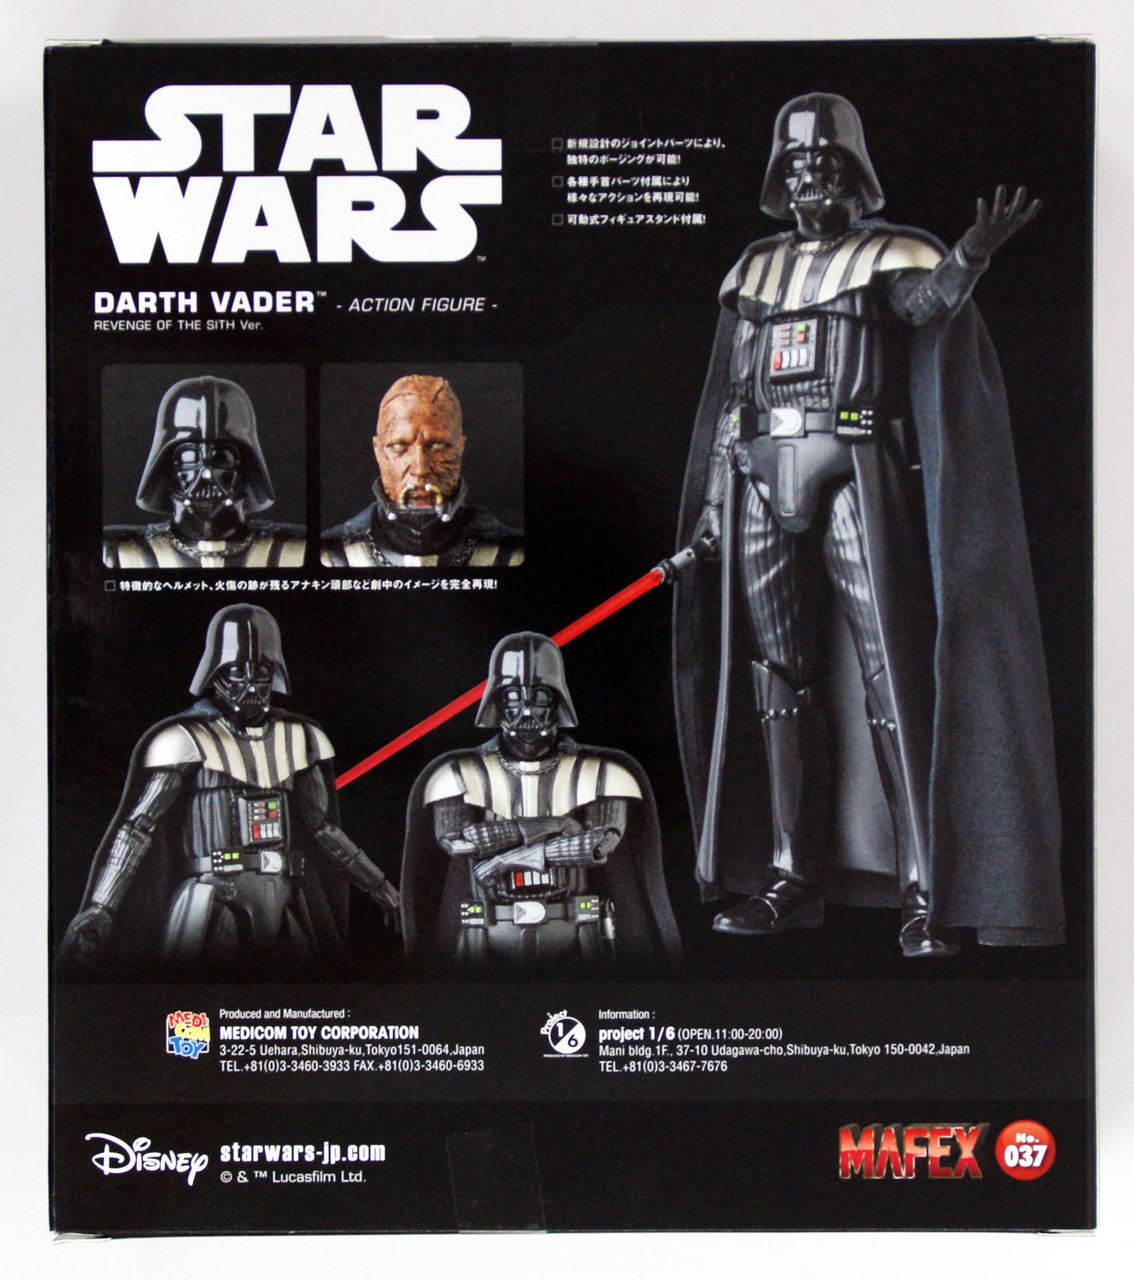 Medicom Mafex 037 Darth Vader Revenge Of The Sith Version From Star Wars Episode Iii Figure 4530956470375 Plaza Japan